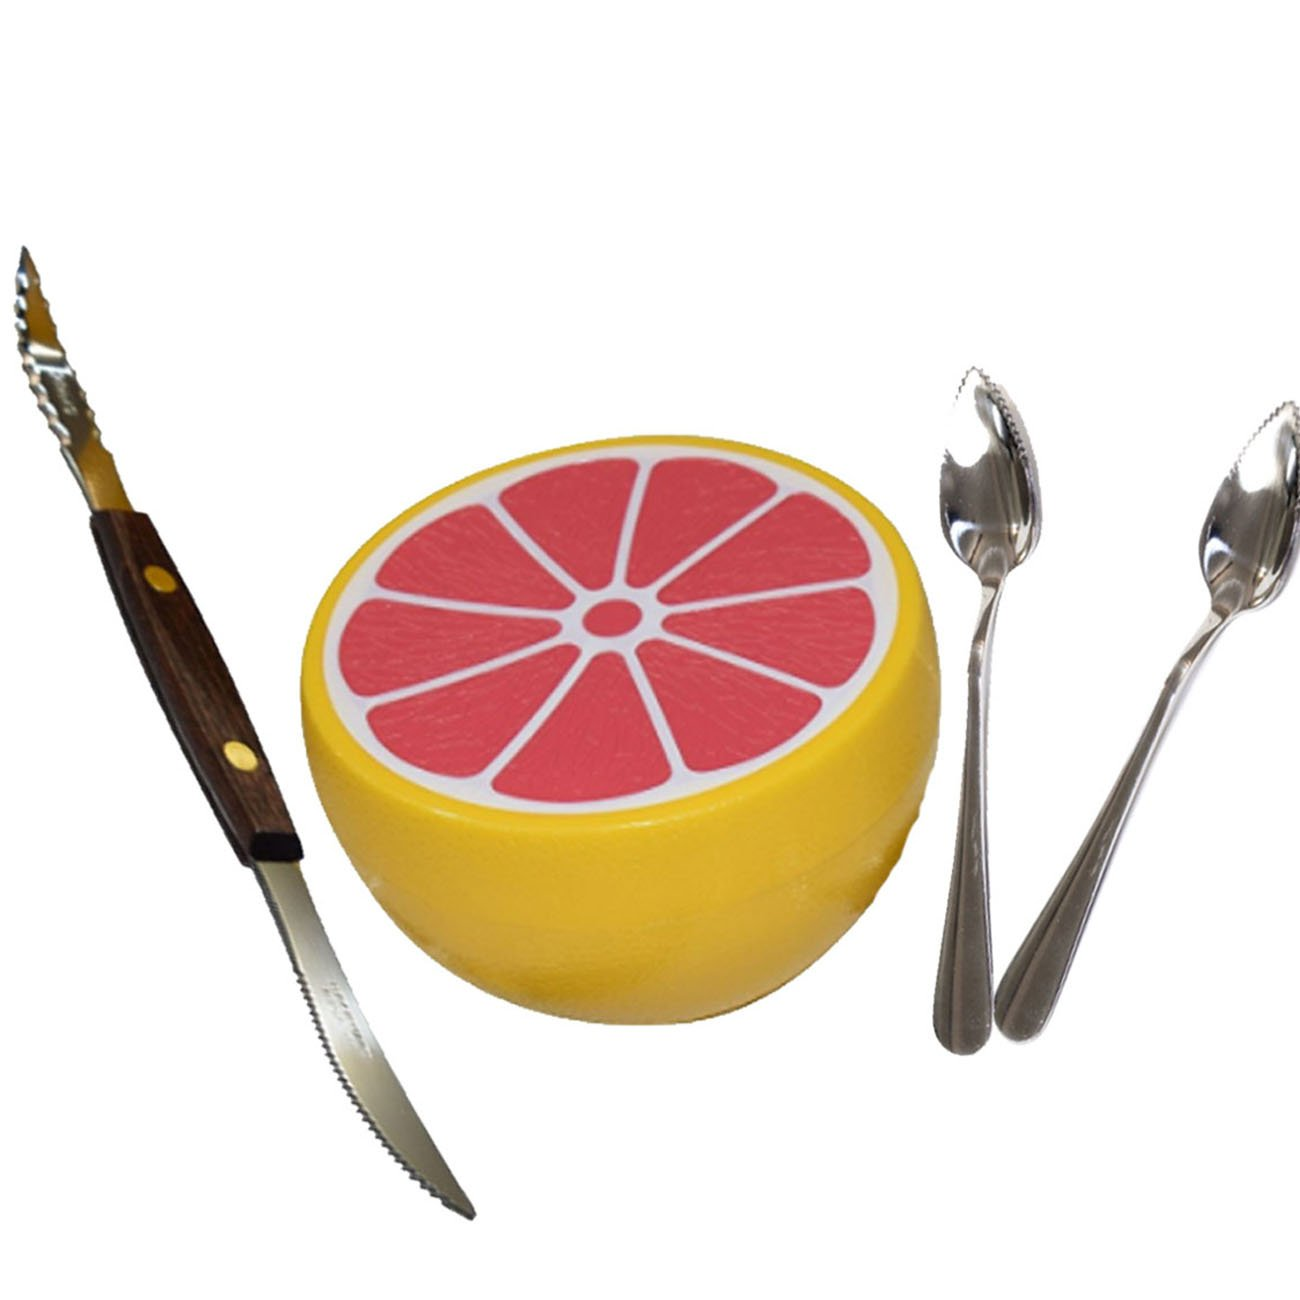 Budays Mart Squirtfree Serrated Twin-Blade Grapefruit Knife, Grapefruit spoons (2) stainless Steel, Serrated Edges and grapefruit saver